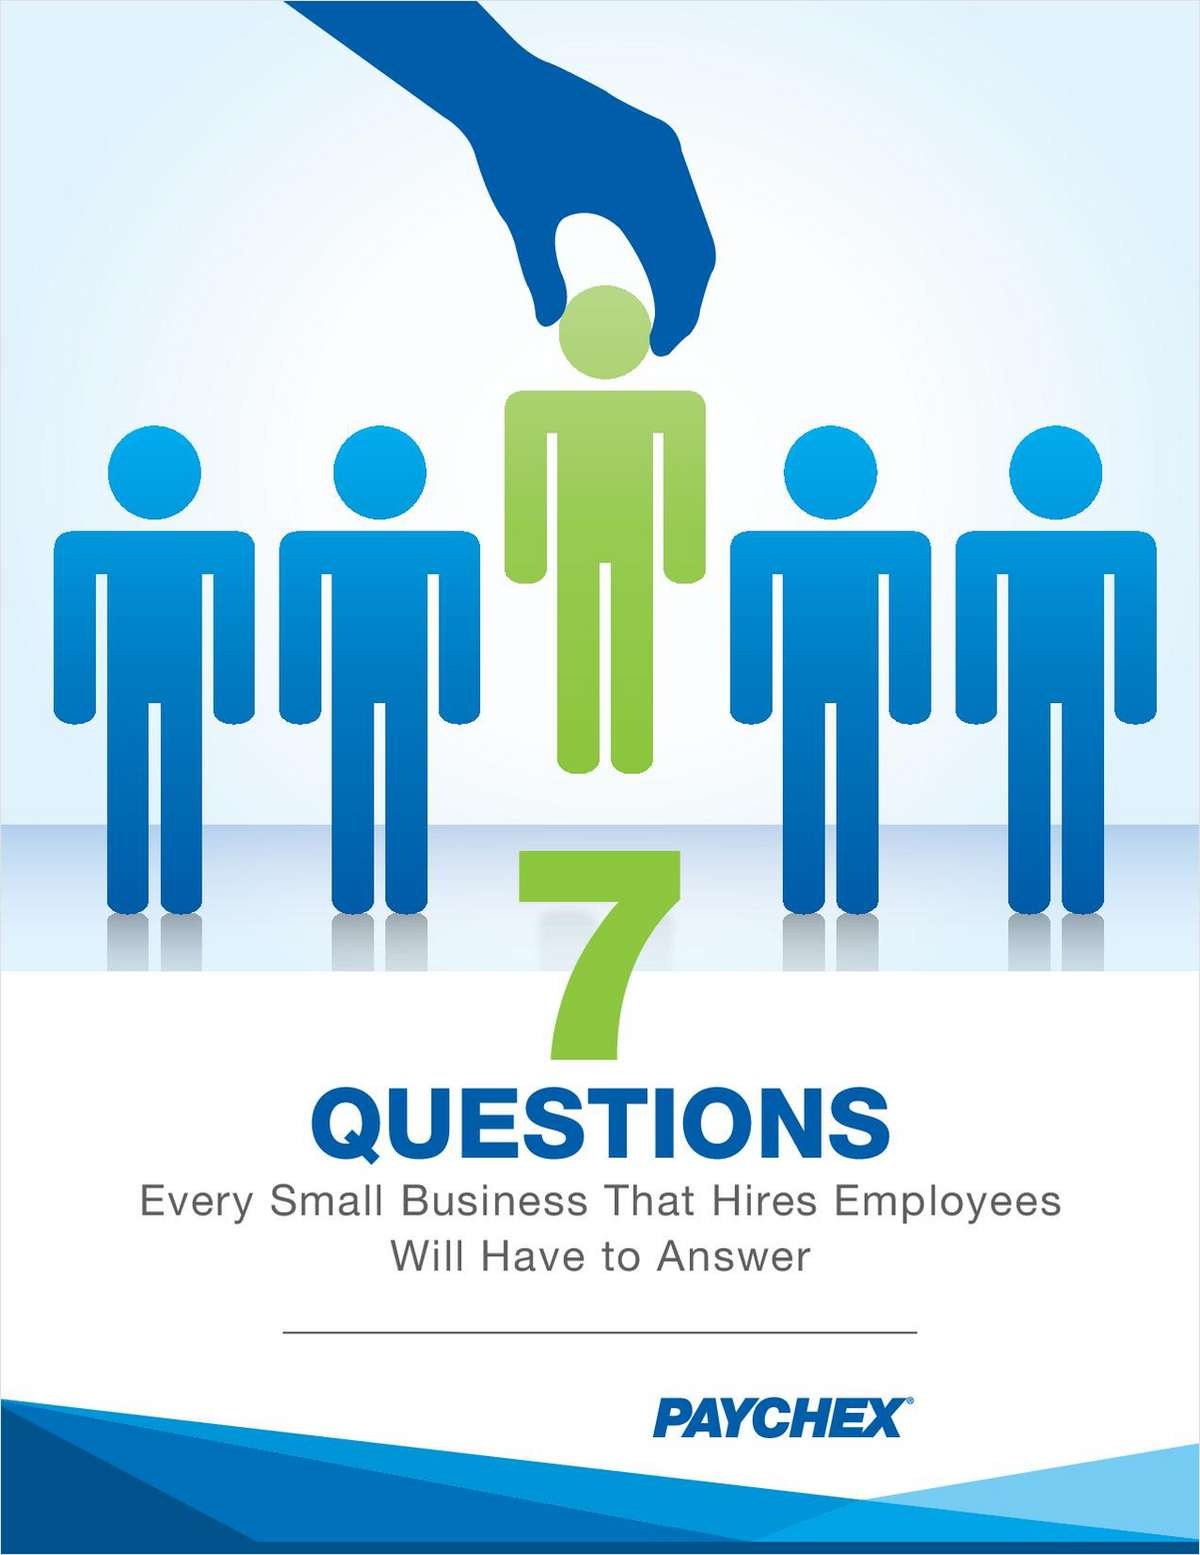 7 Questions Every Small Business That Hires Employees Will Have to Answer